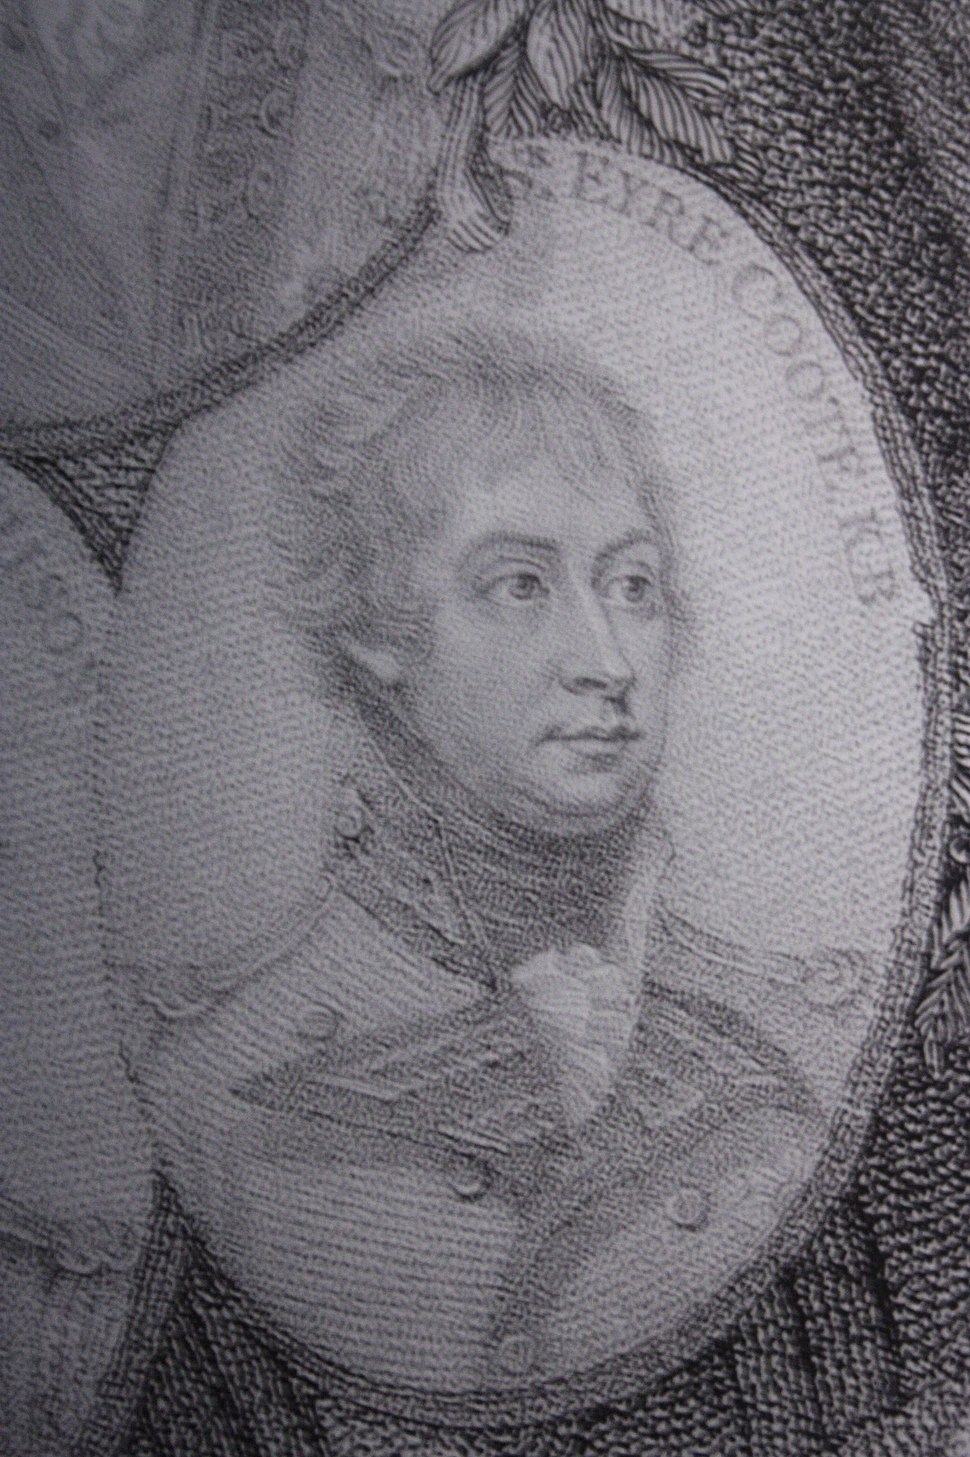 Sir Eyre Coote in 1801